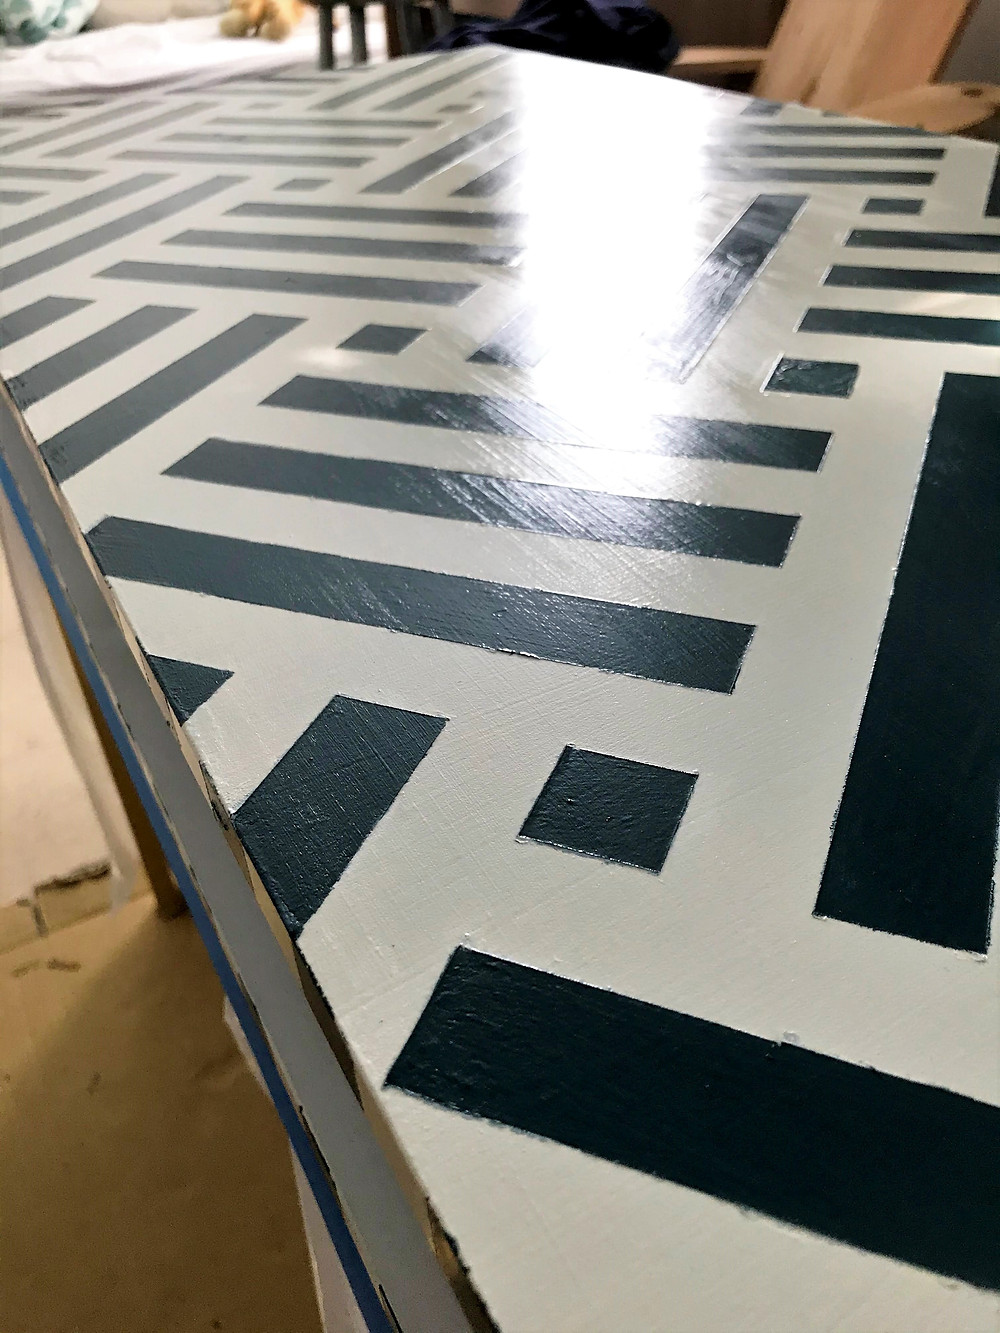 applying acrylic gloss varnish or finish on wood desk with chalk paint design striped pattern